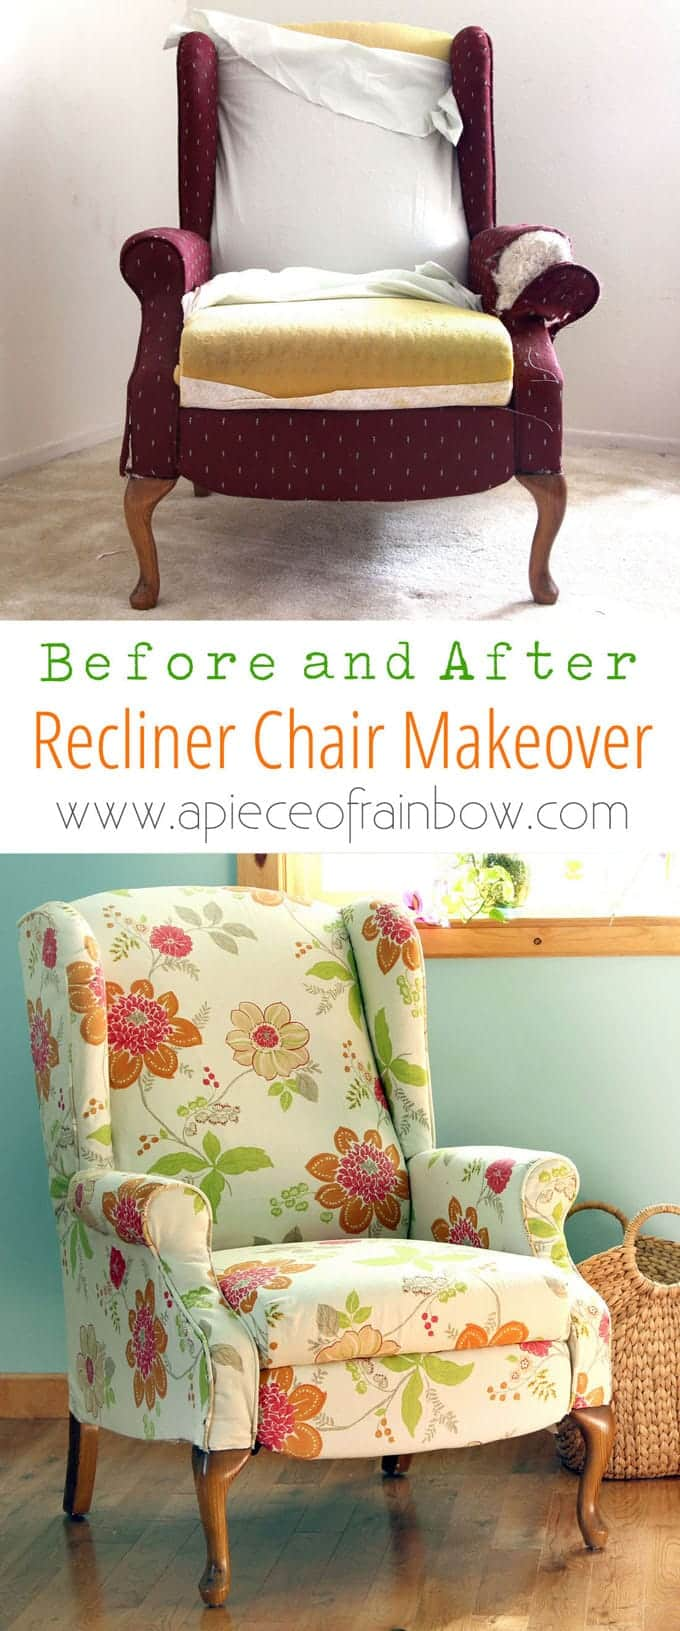 Dramatic before after transformation and detailed tutorial on how to makeover an upholstered recliner chair & Fabric Chair Makeover Before After - A Piece Of Rainbow islam-shia.org